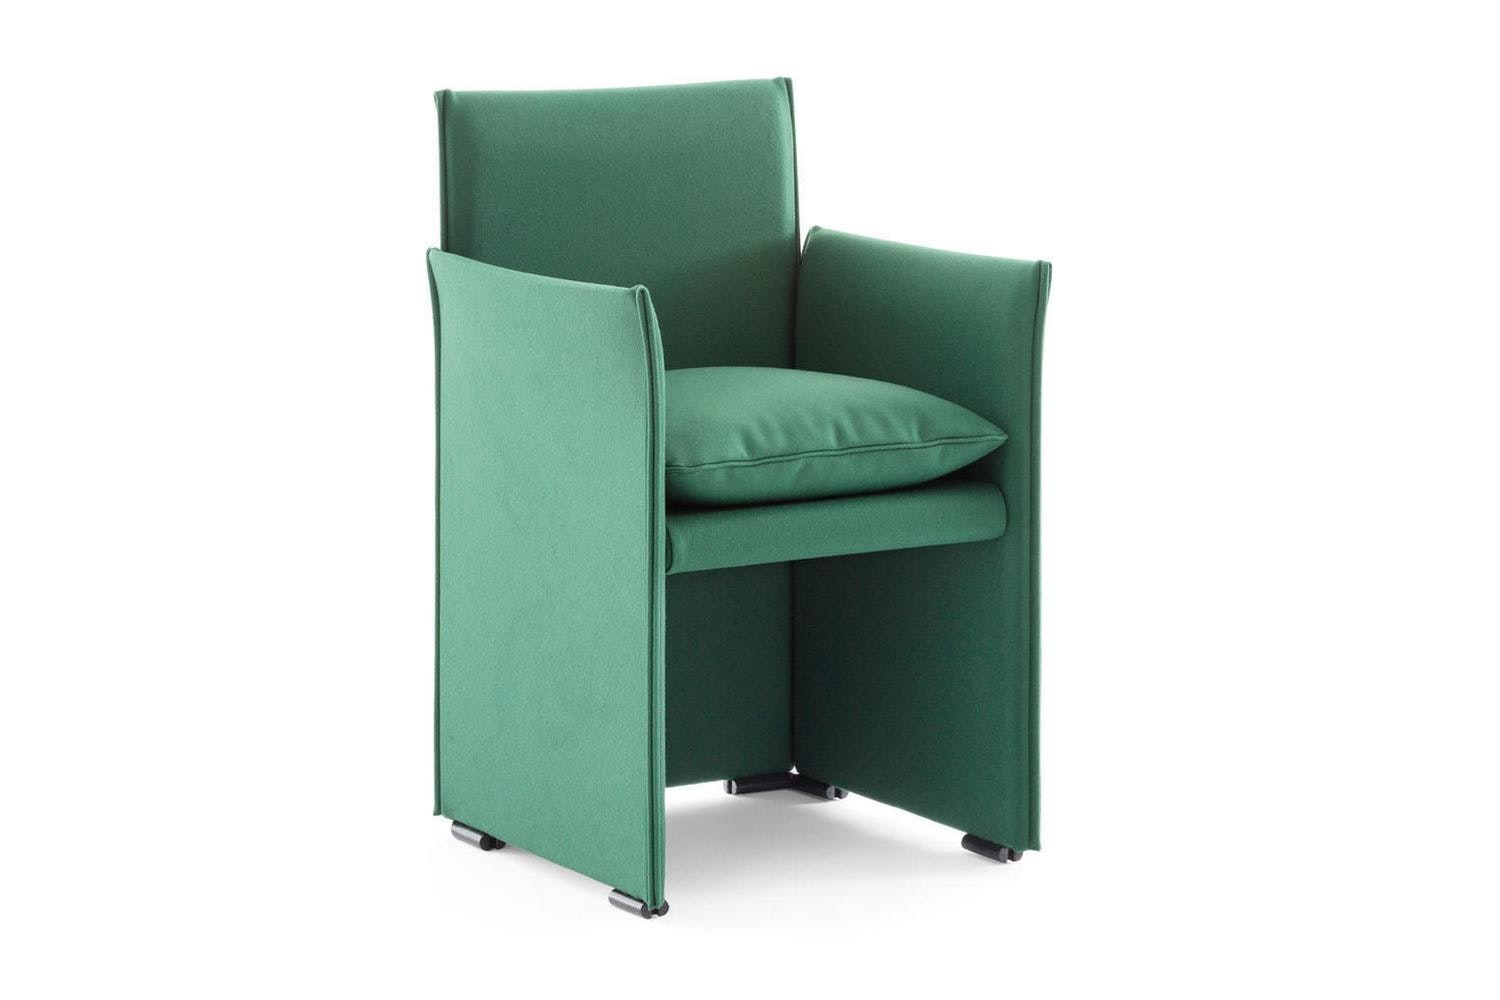 401 Break Chair by Mario Bellini for Cassina